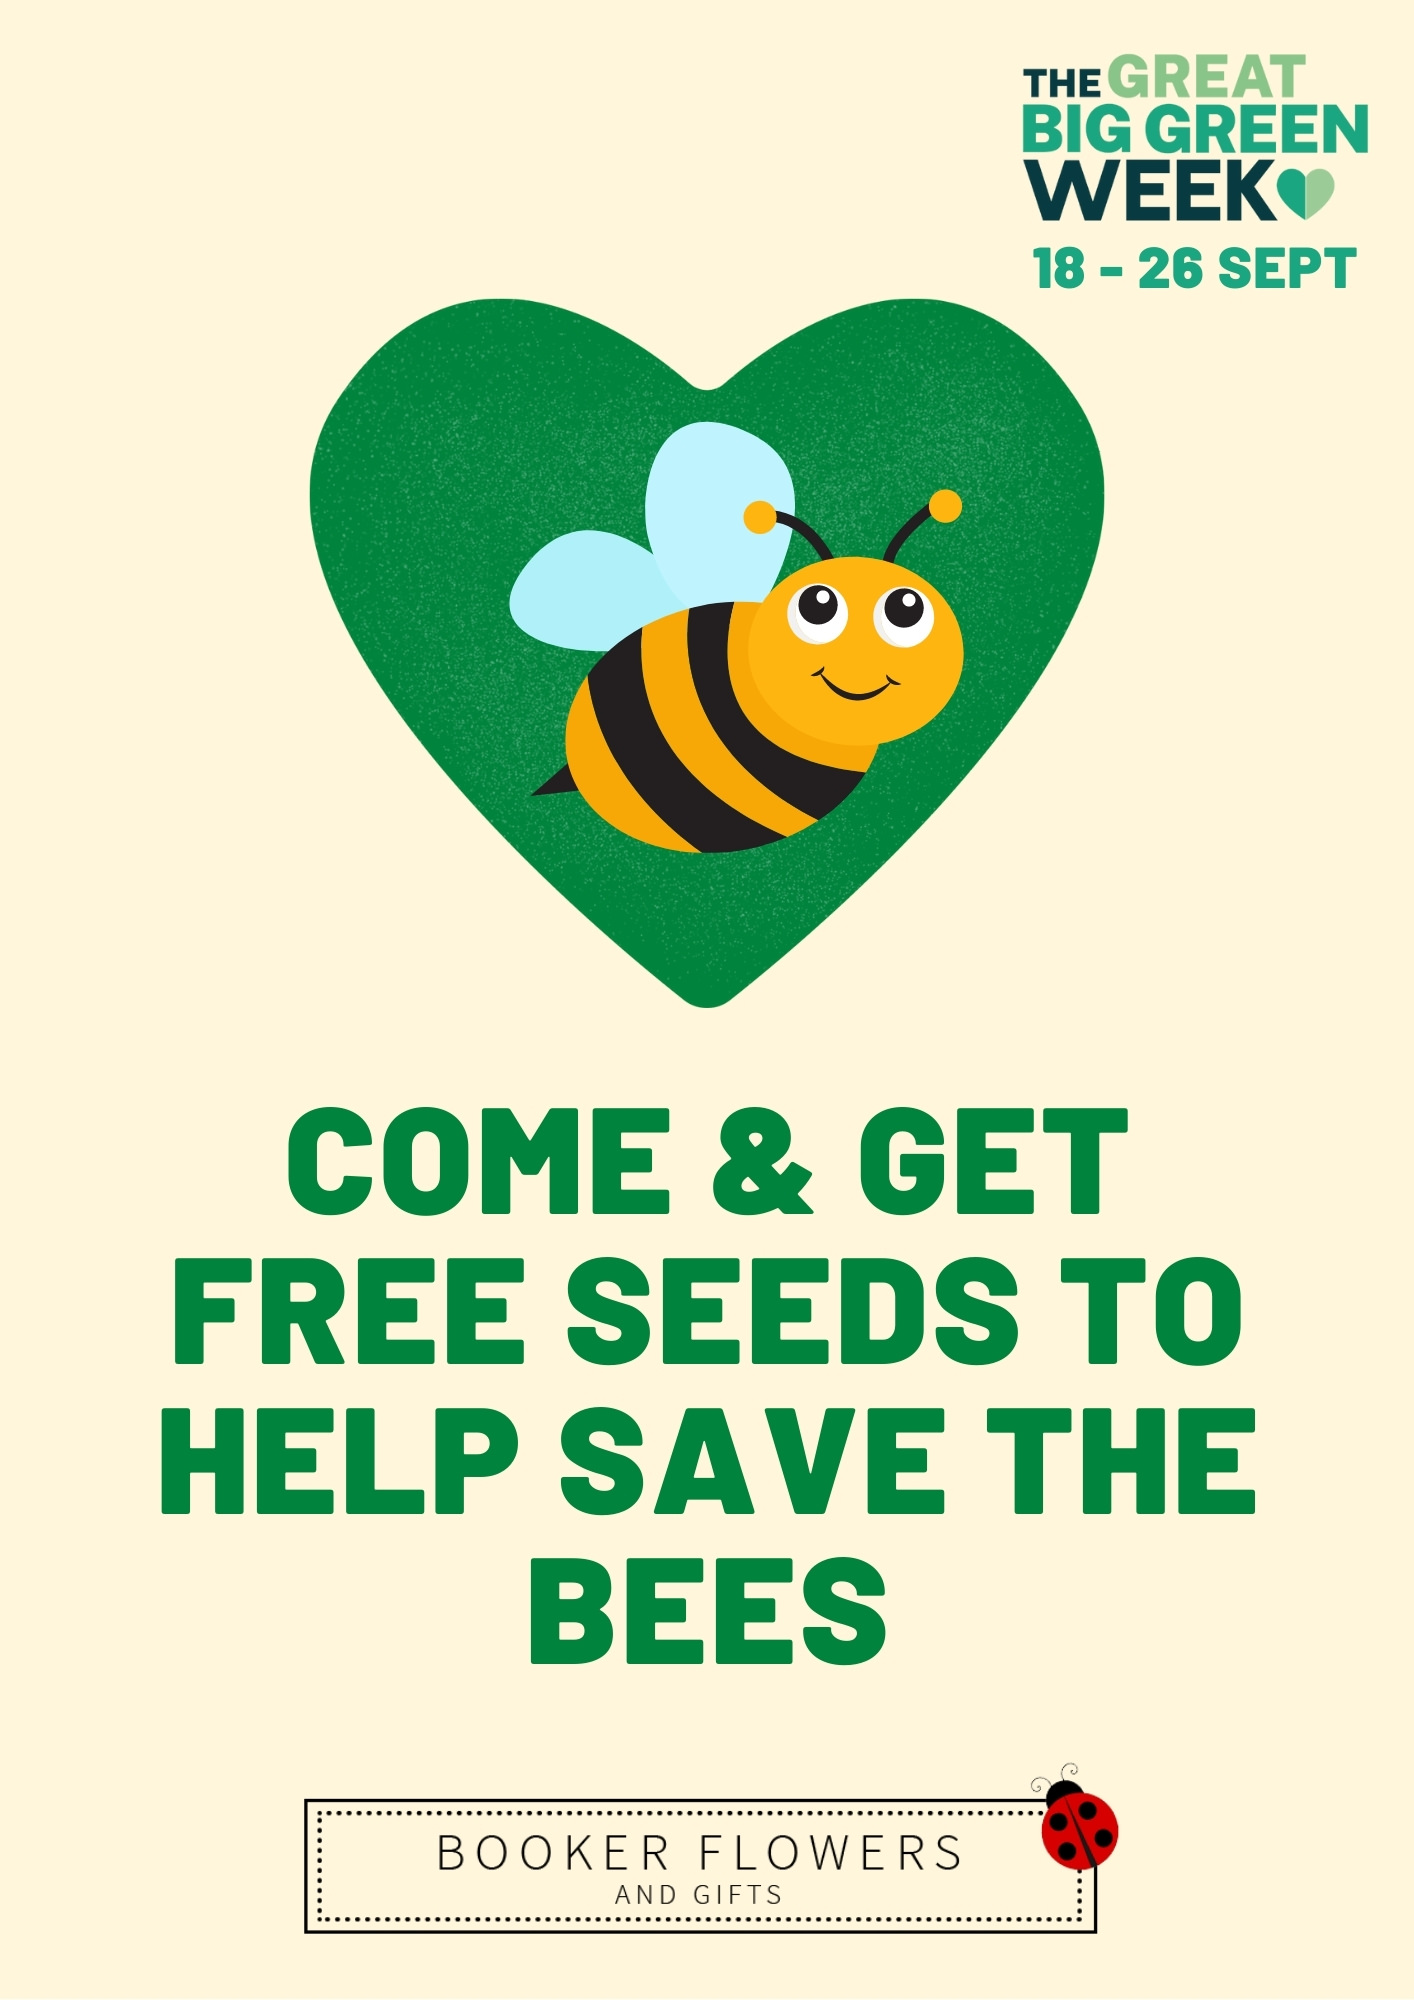 Save the bees - collect your seed bombs from Booker Avenue